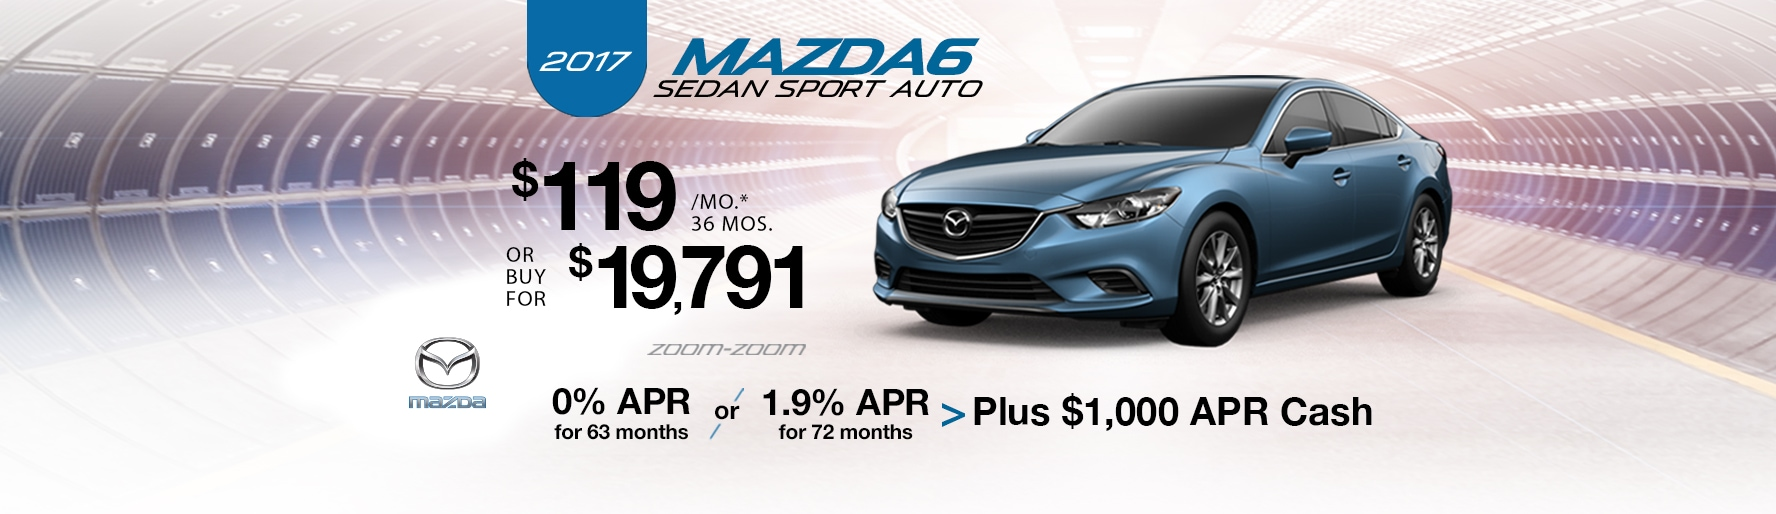 2017 Mazda i Sport Auto Lease Special at Liberty Mazda